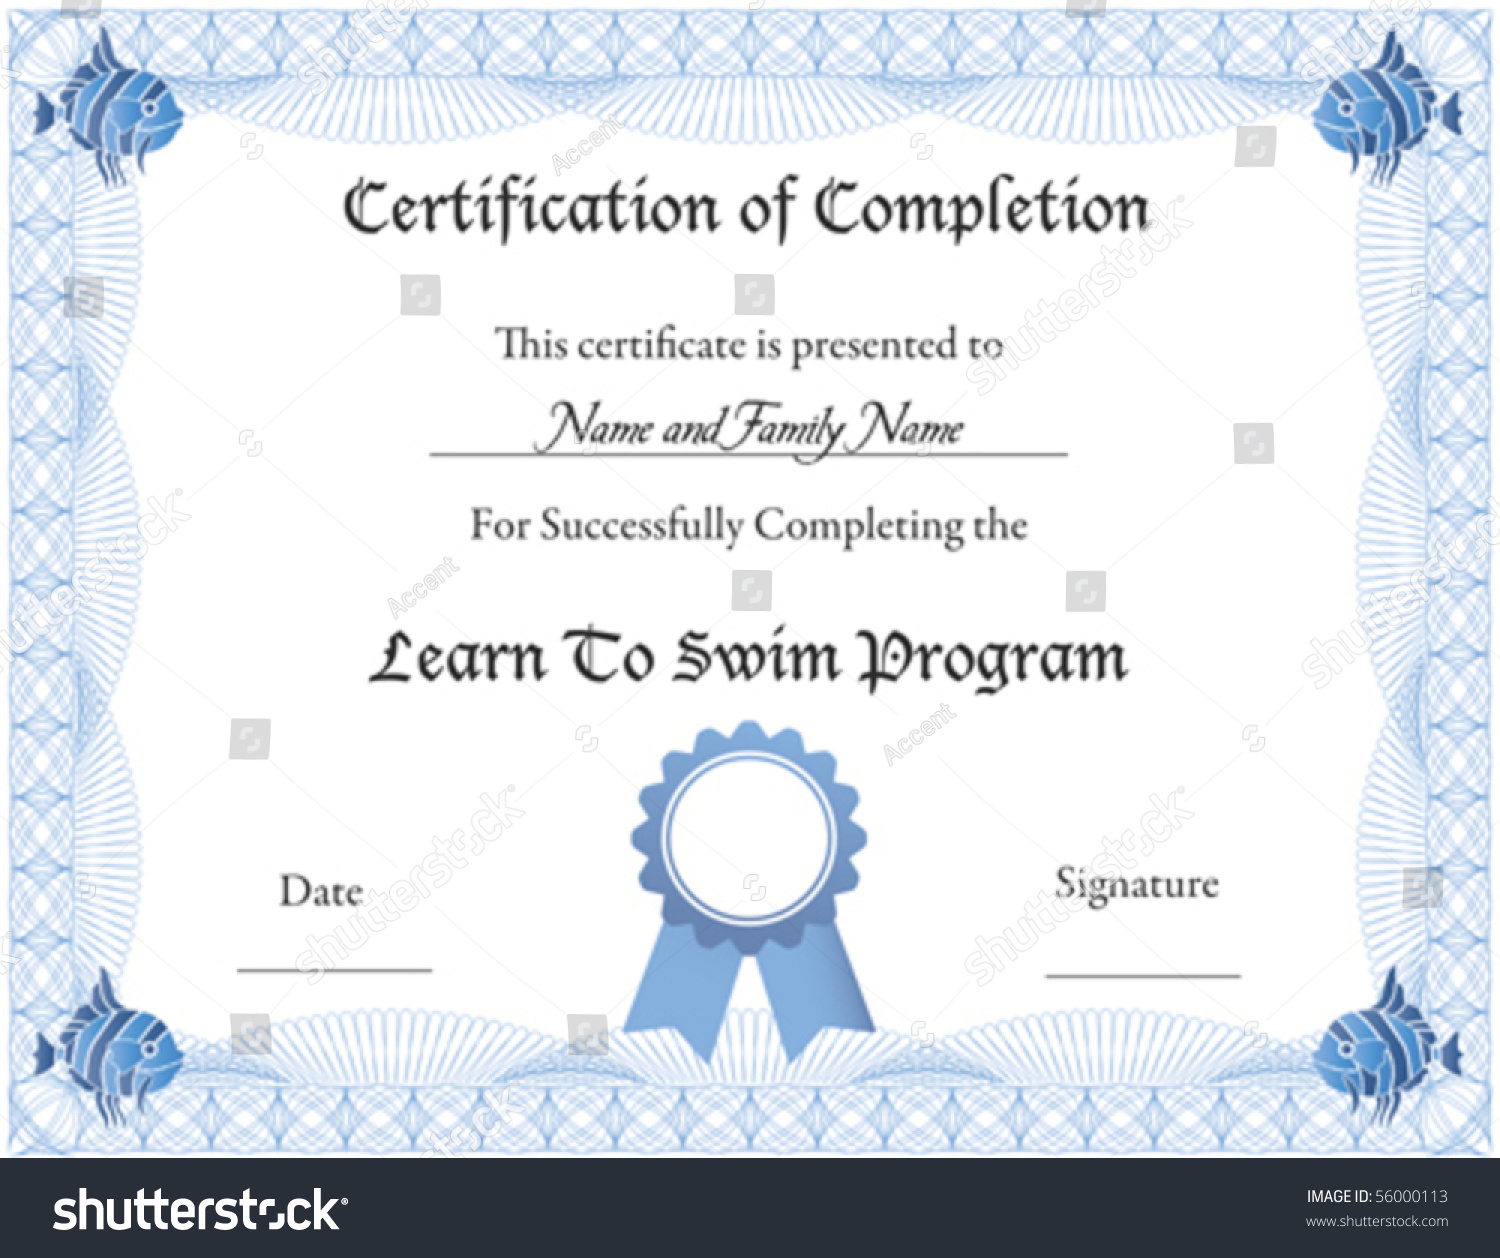 Vector certificate completion template stock vector 56000113 vector certificate of completion template xflitez Gallery